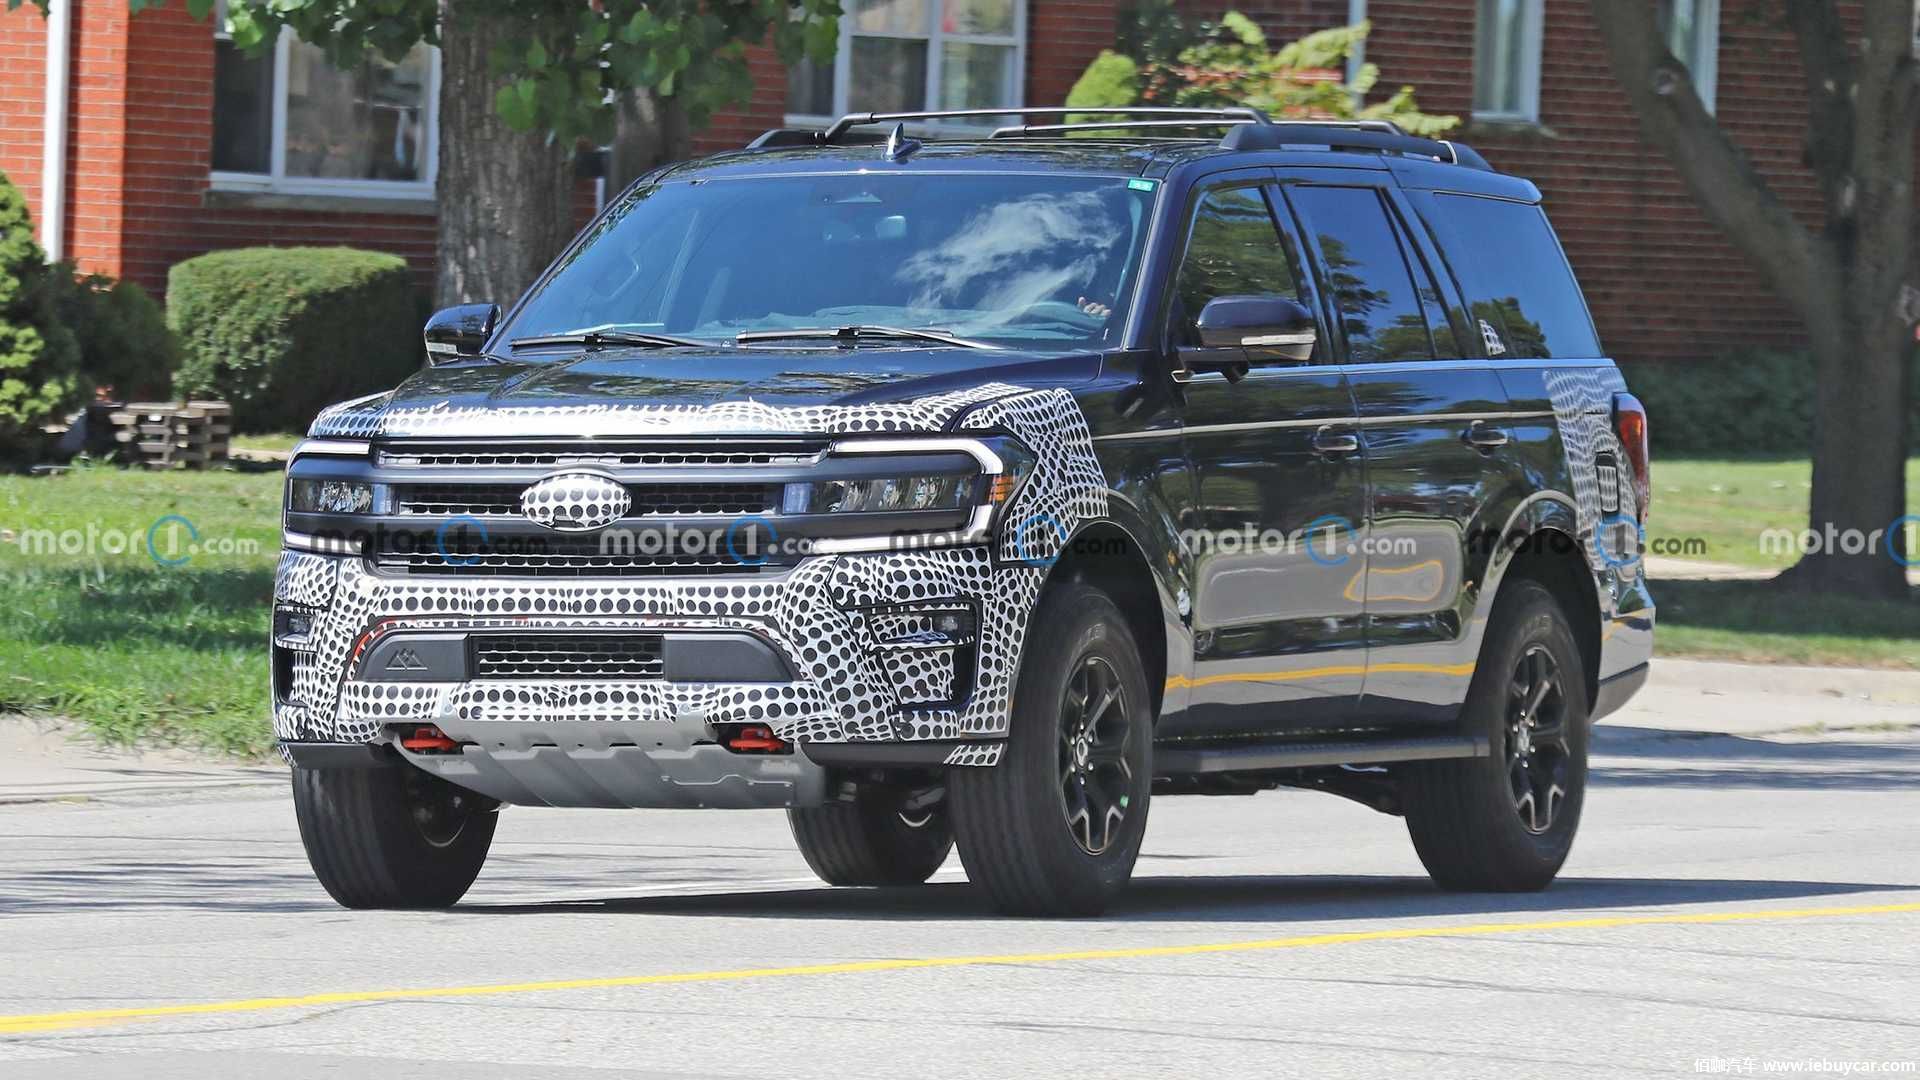 2022-ford-expedition-timberline-new-spy-photo.jpg